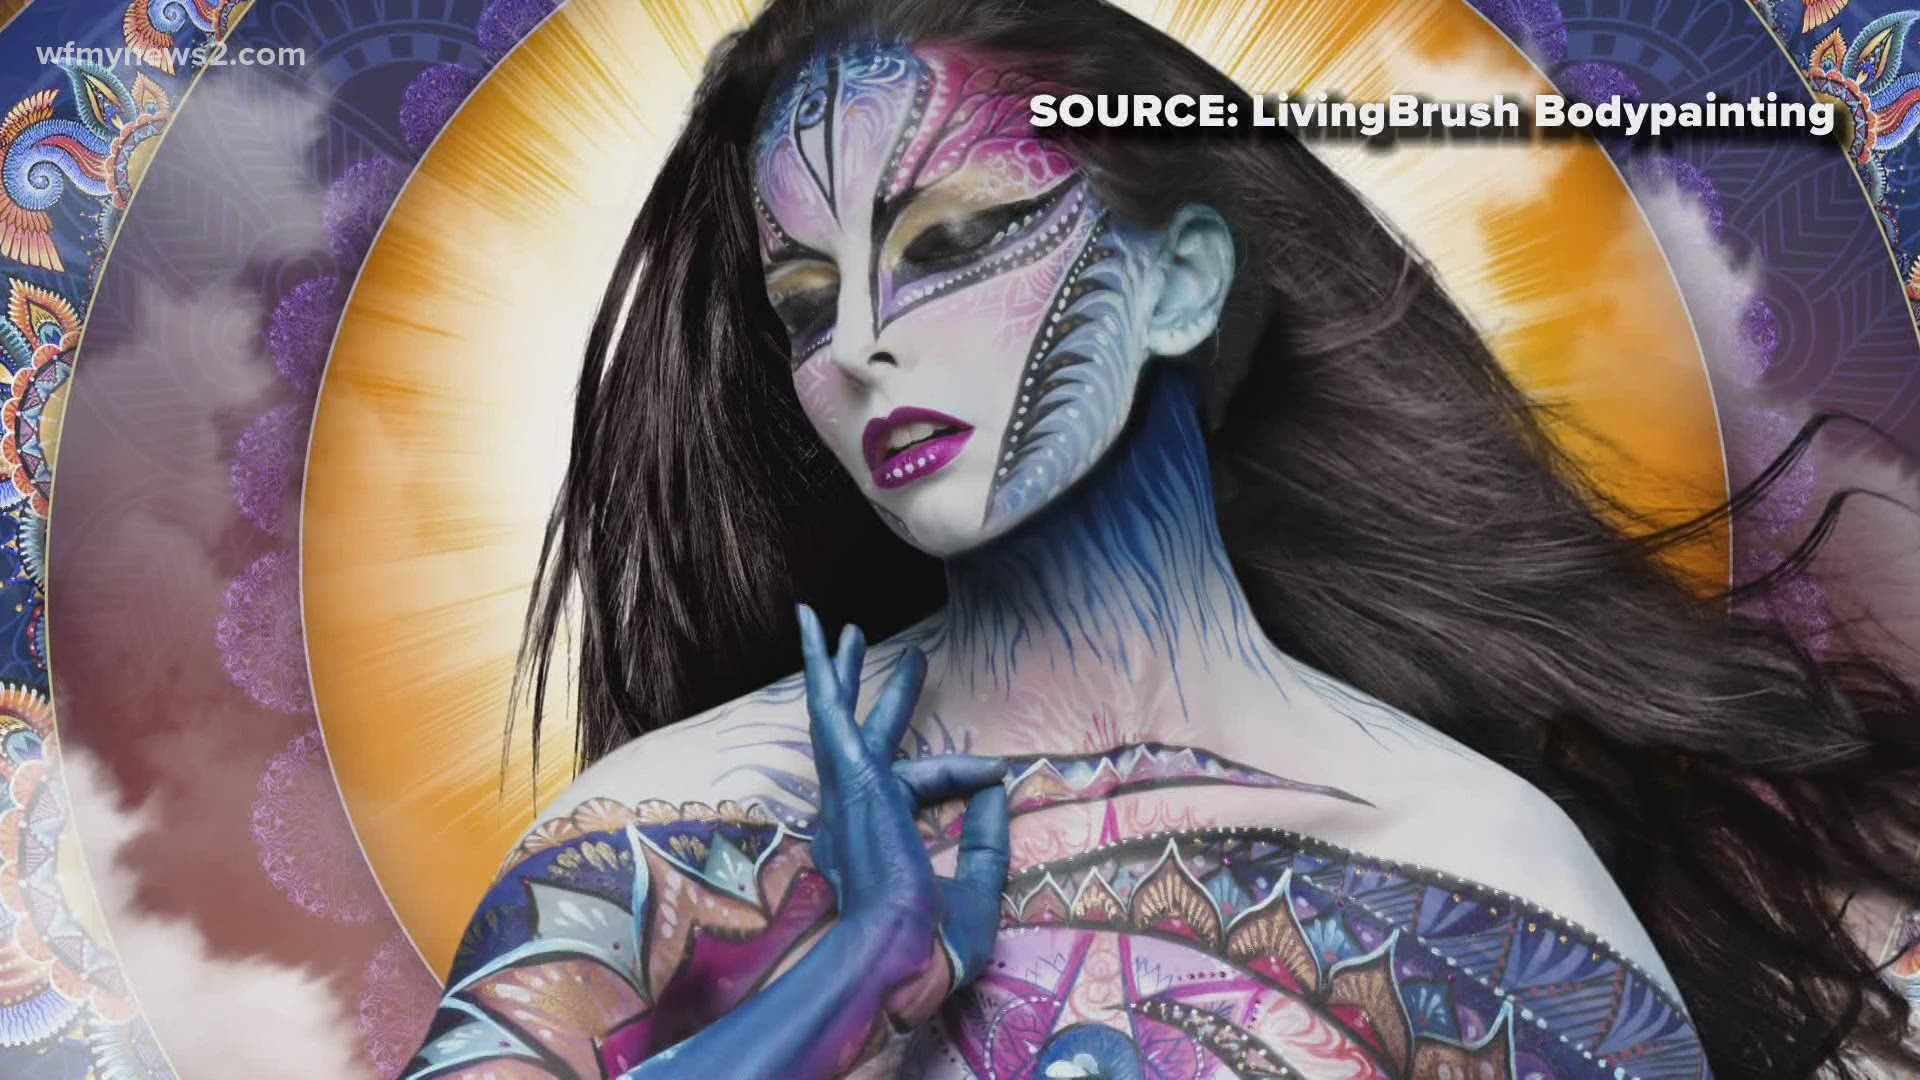 Champion Body Painting Artist To Broadcast From Reidsville Wfmynews2 Com